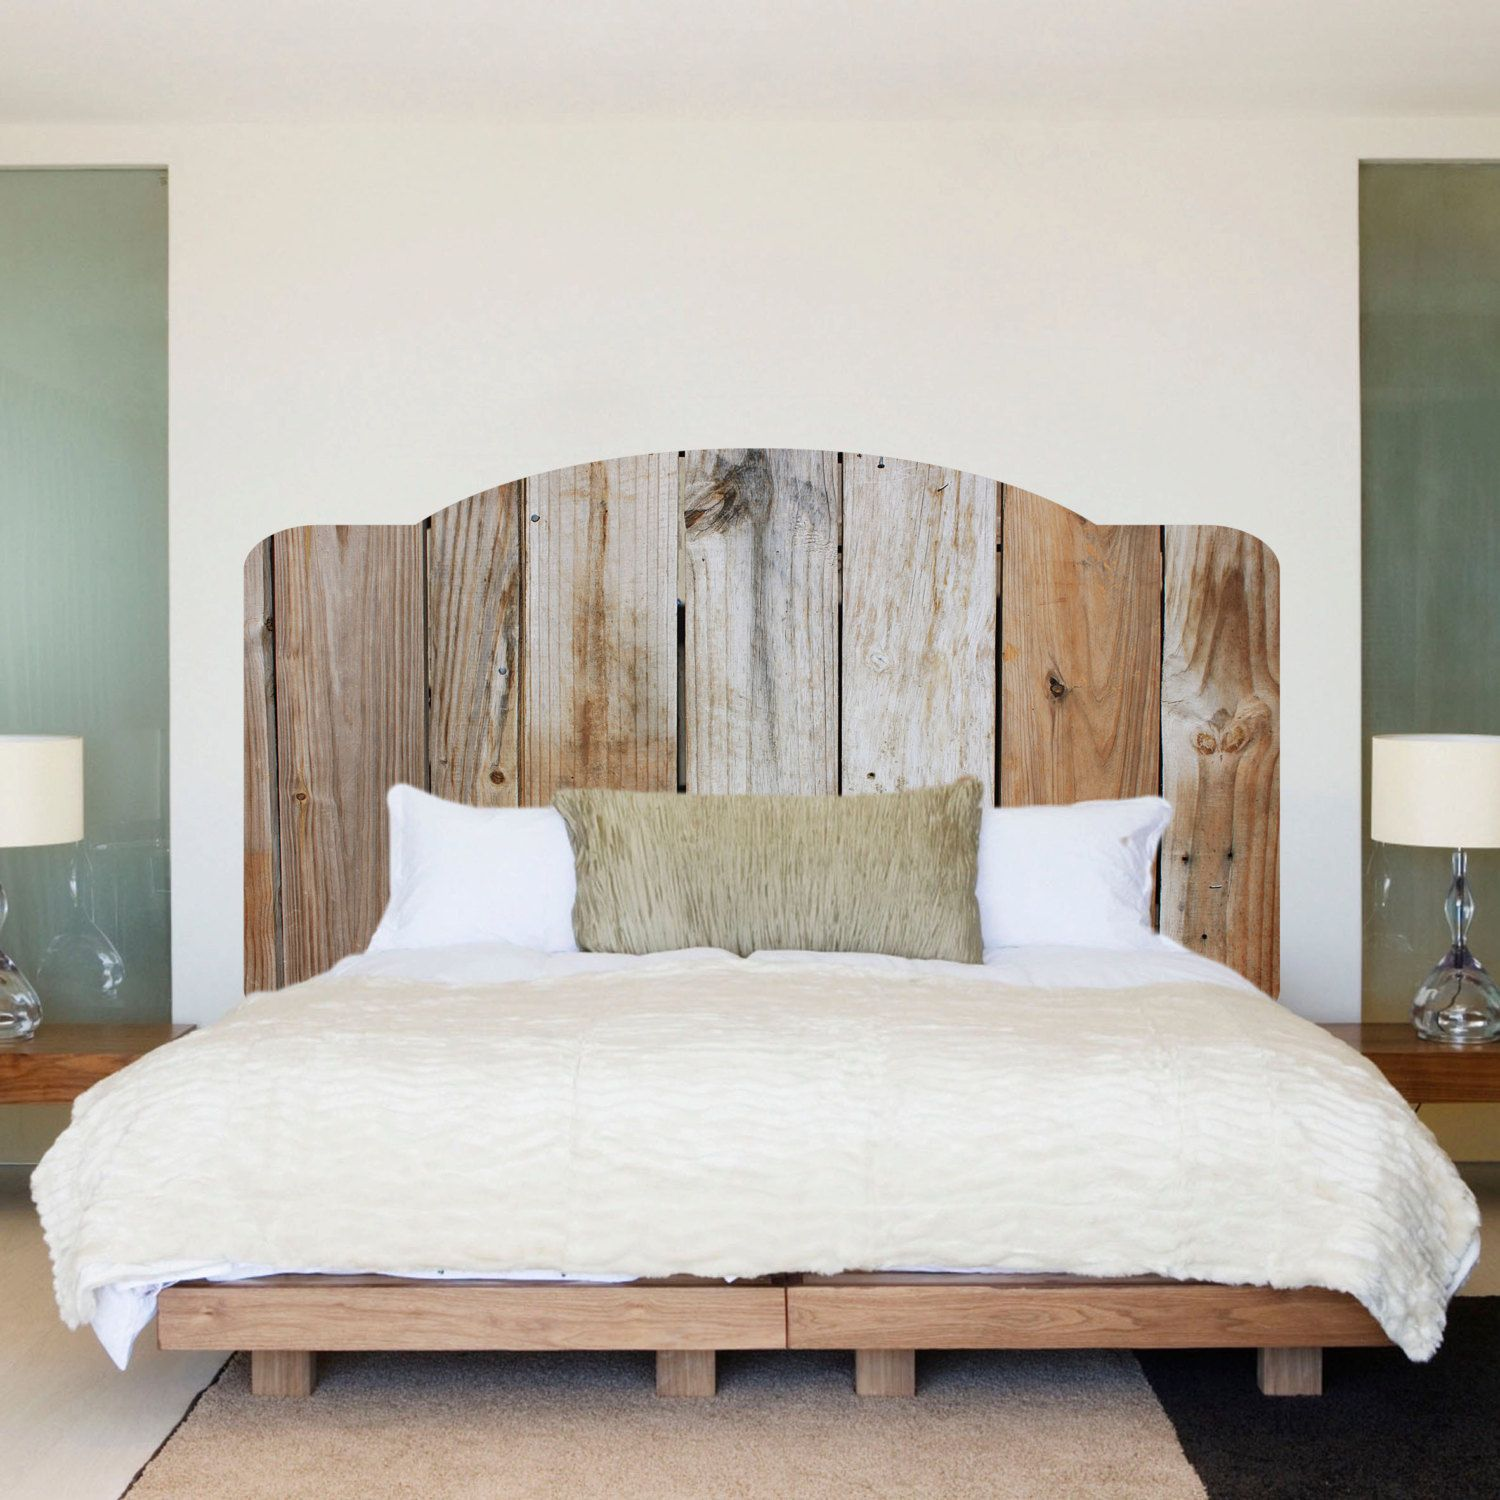 Rustic Wood Headboard Wall Decal Rustic Headboard Wall